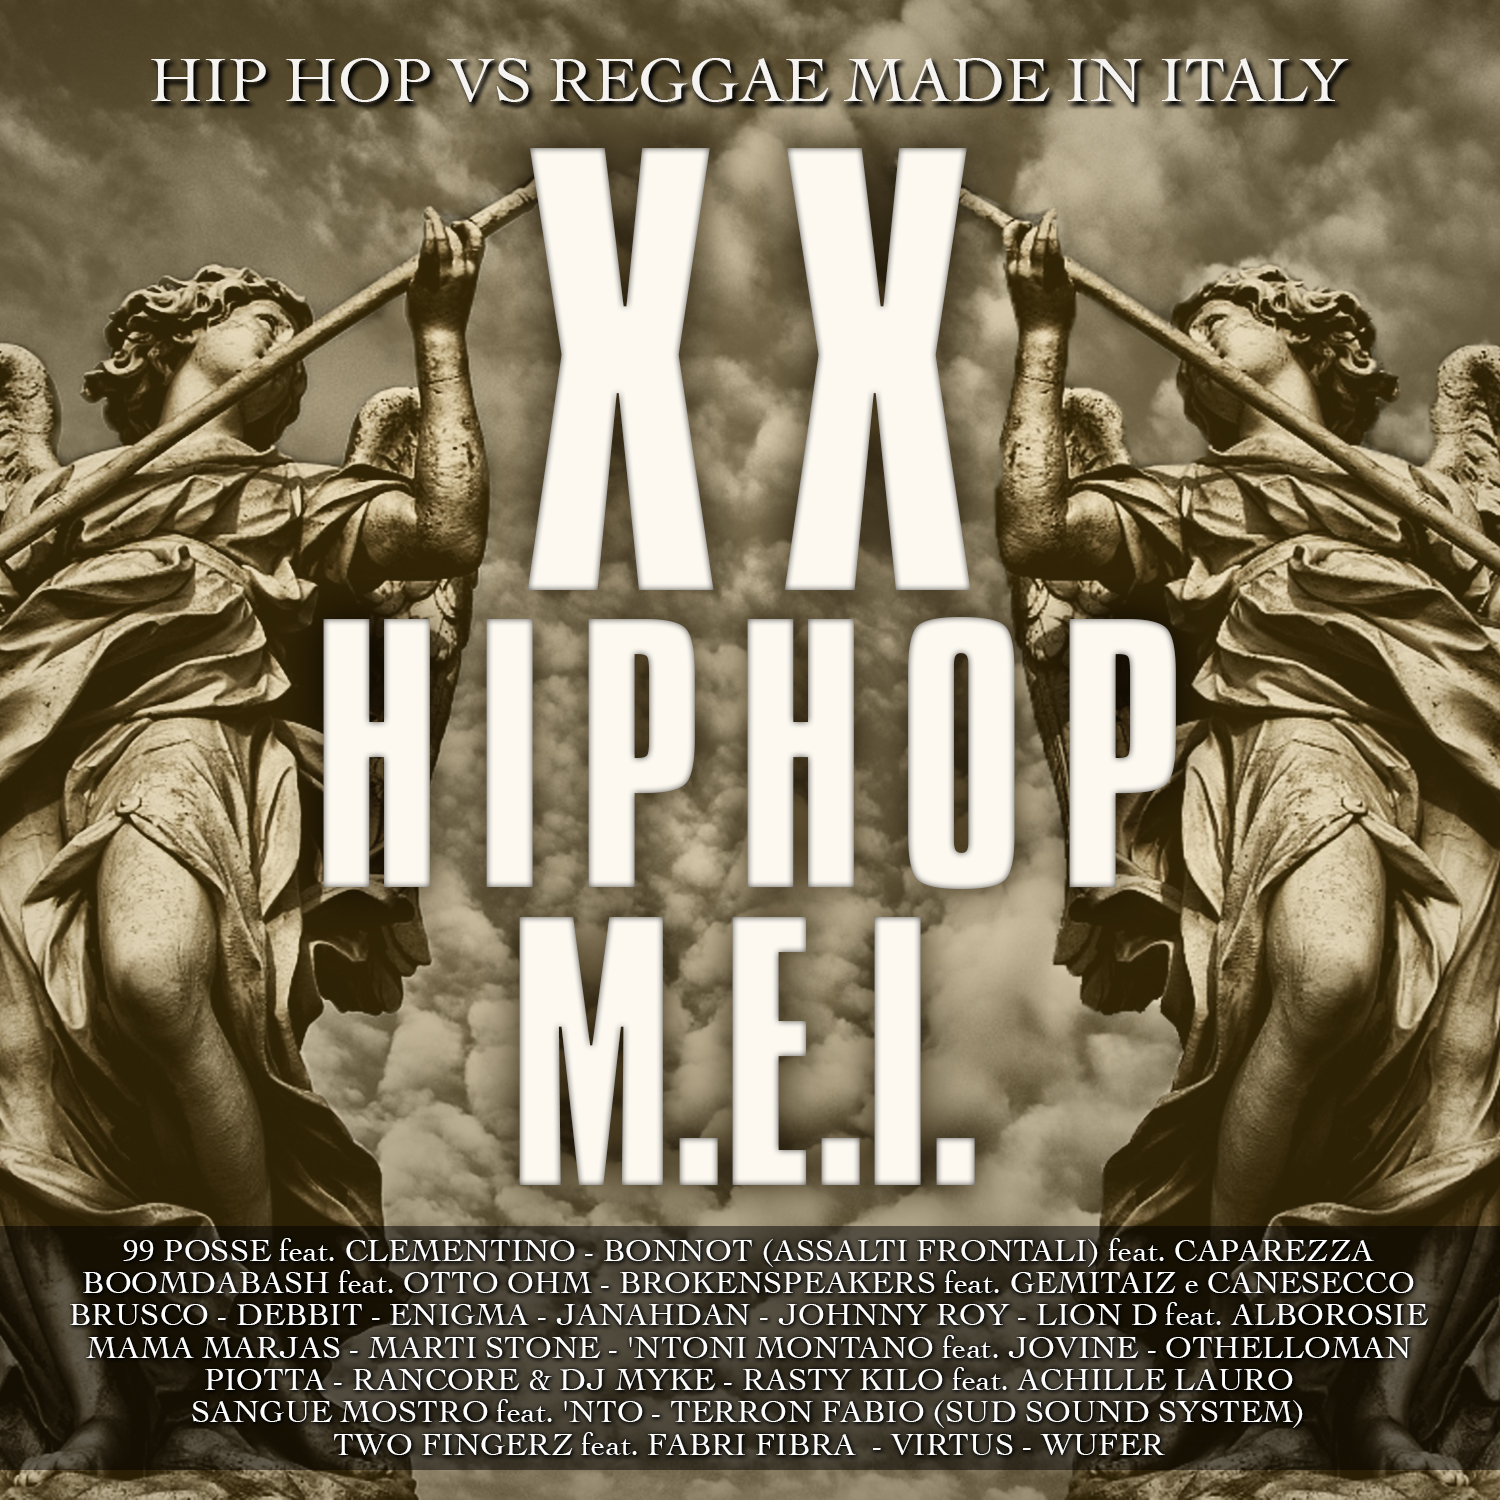 XX Hip Hop M.E.I. (Hip Hop vs Reggae Made in Italy)